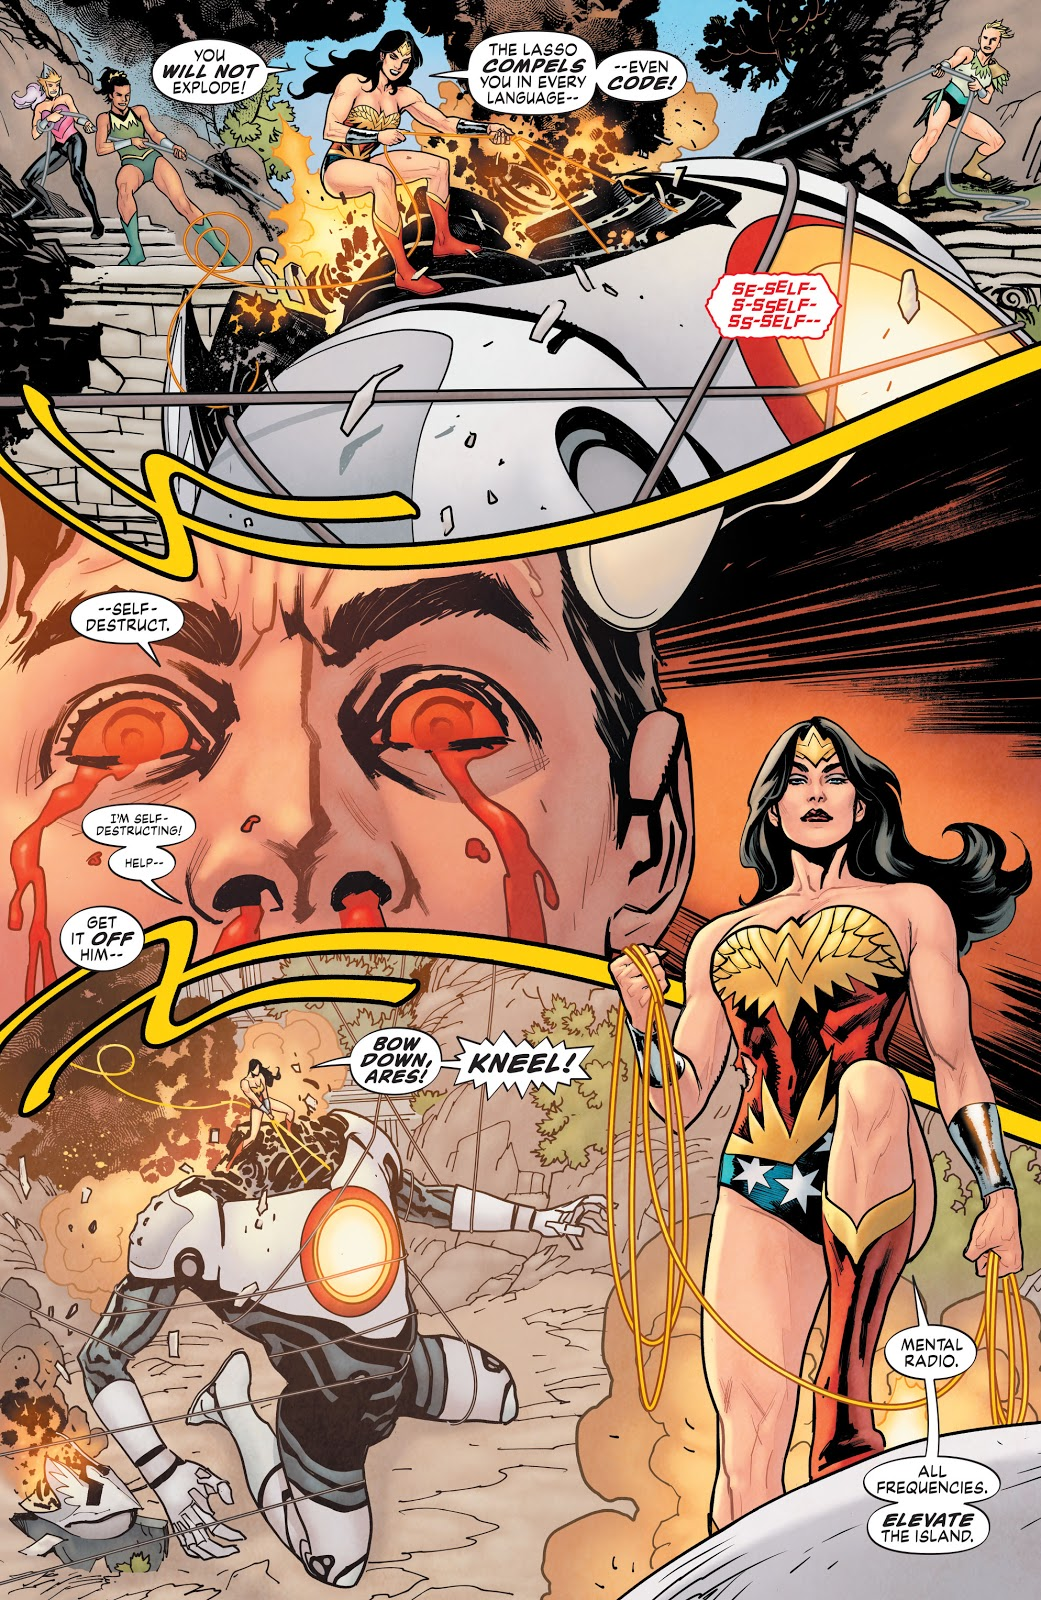 Wonder Woman VS ARES Mark 2 (Earth One)